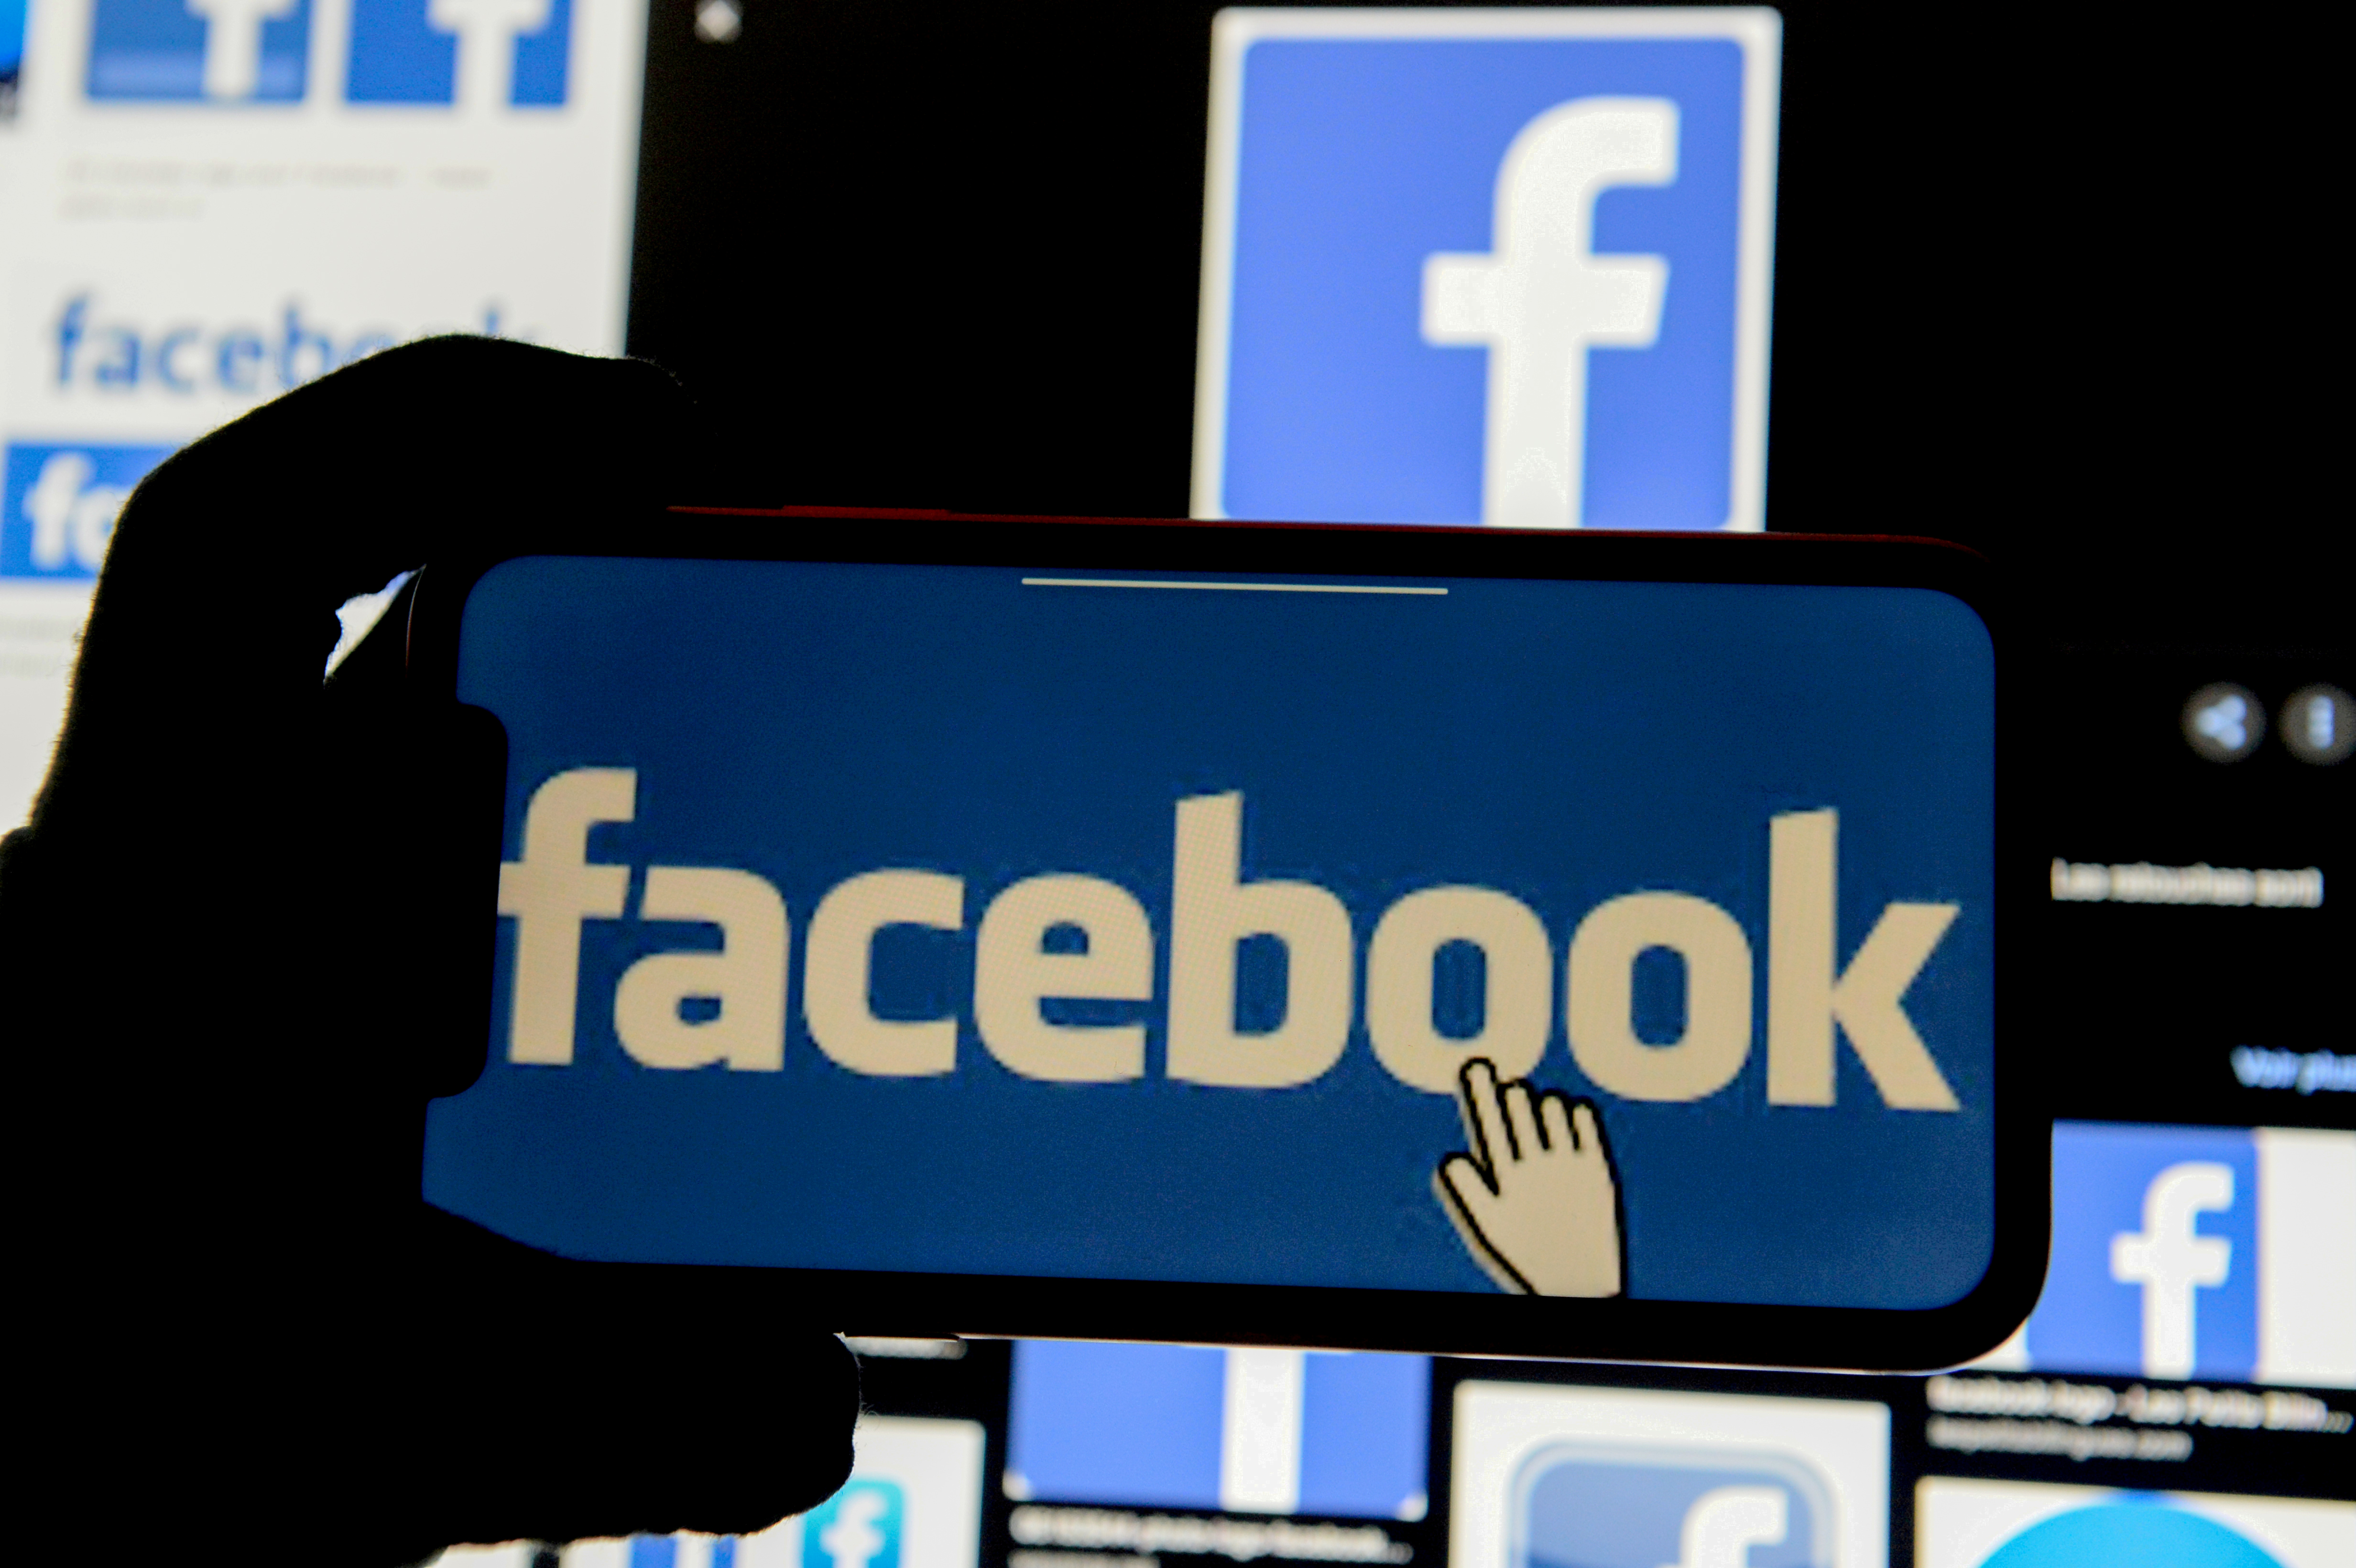 The Facebook logo is displayed on a mobile phone in this picture illustration taken December 2, 2019. REUTERS/Johanna Geron/Illustration//File Photo